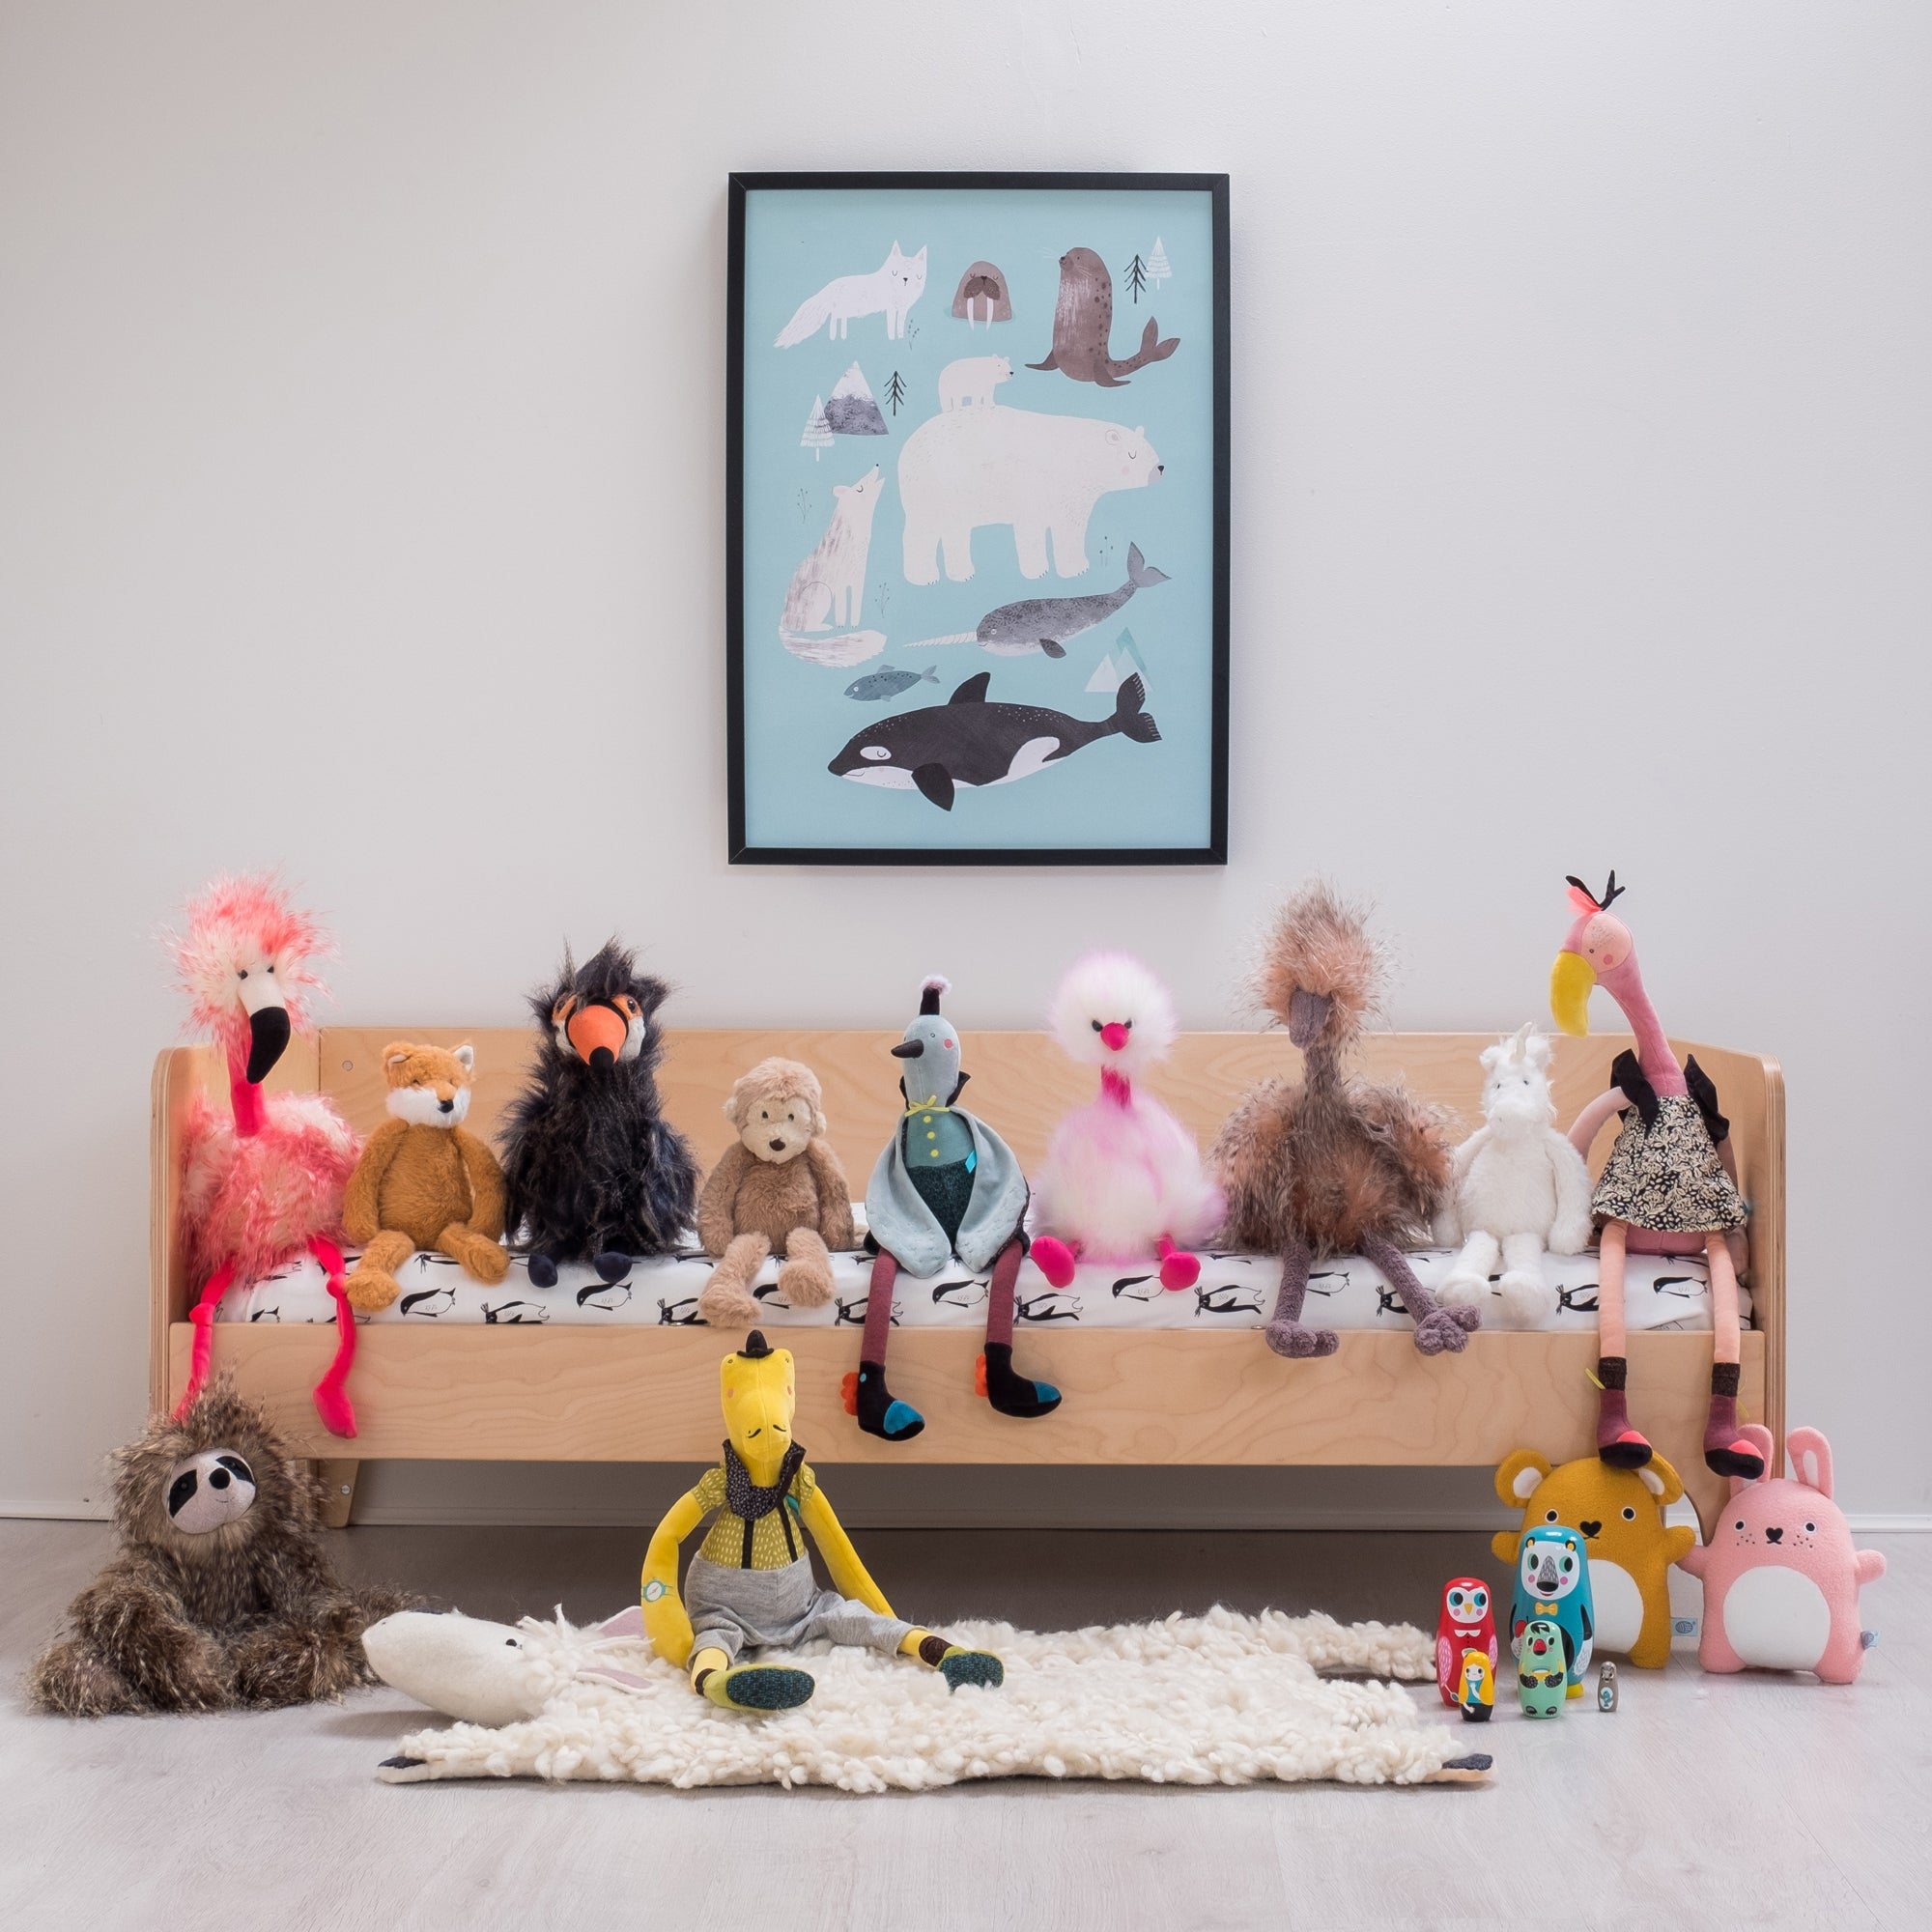 Soft Toys and Accessories, available at Bobby Rabbit.